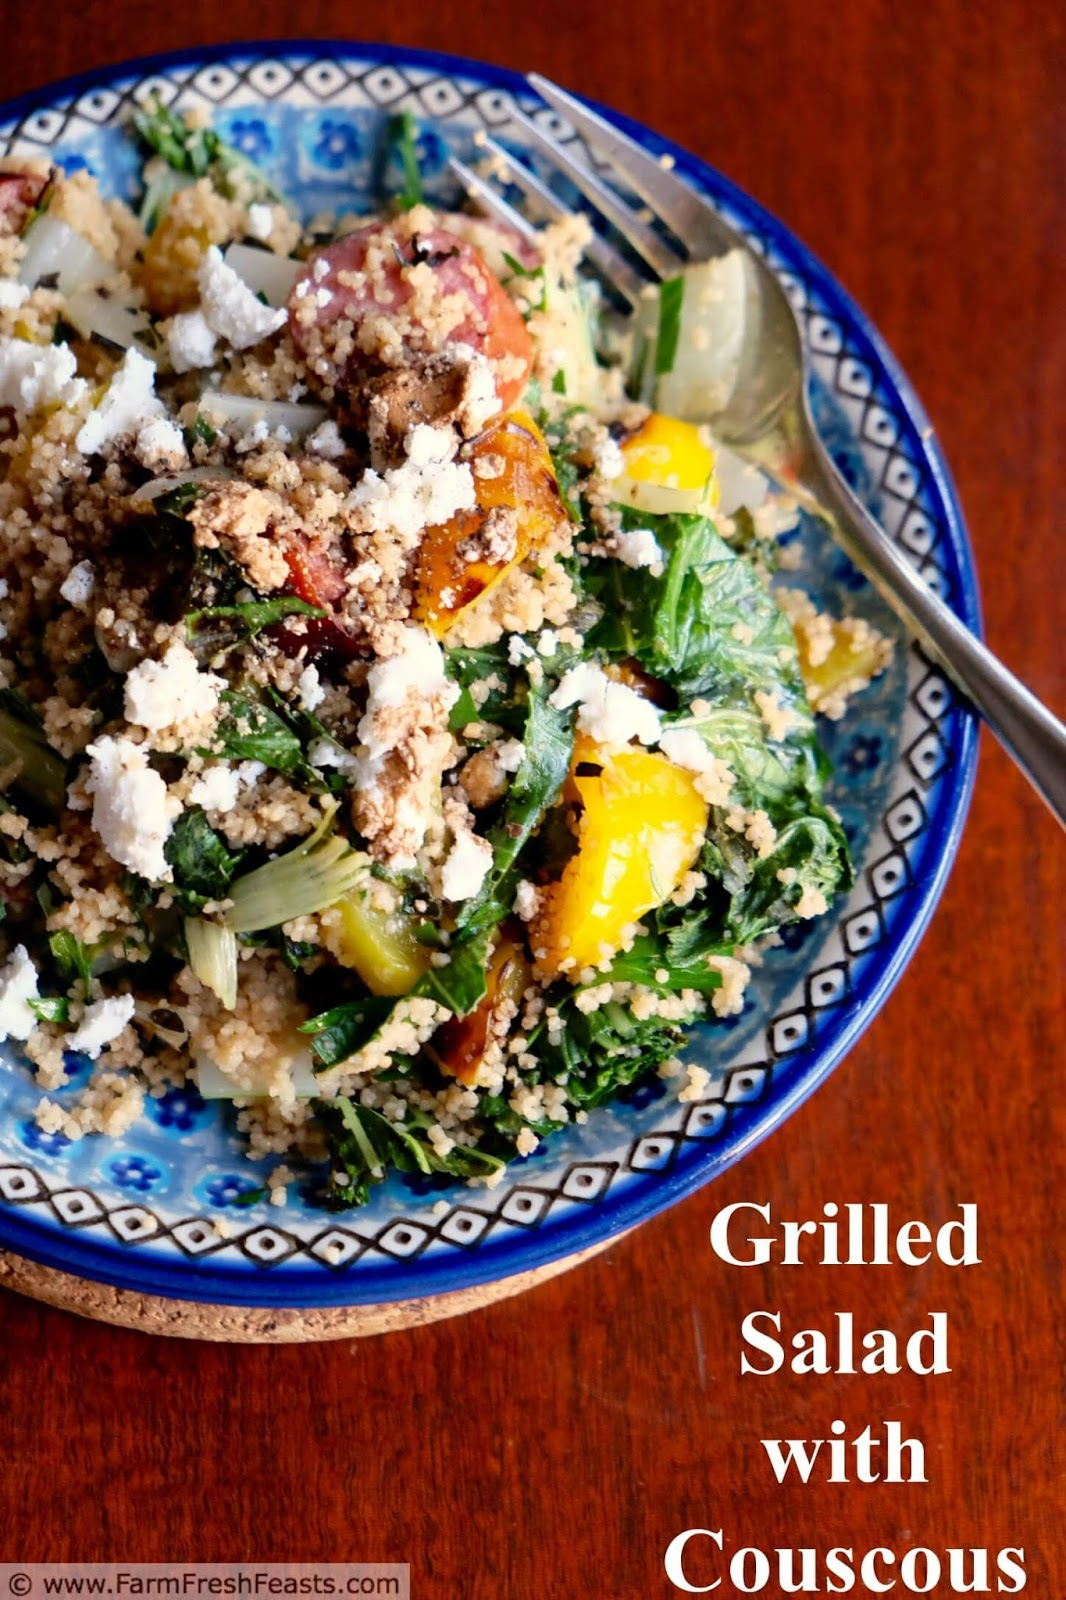 Farmhouse Rules Salad Recipes Farm Fresh Feasts Grilled Greens Salad With Couscous